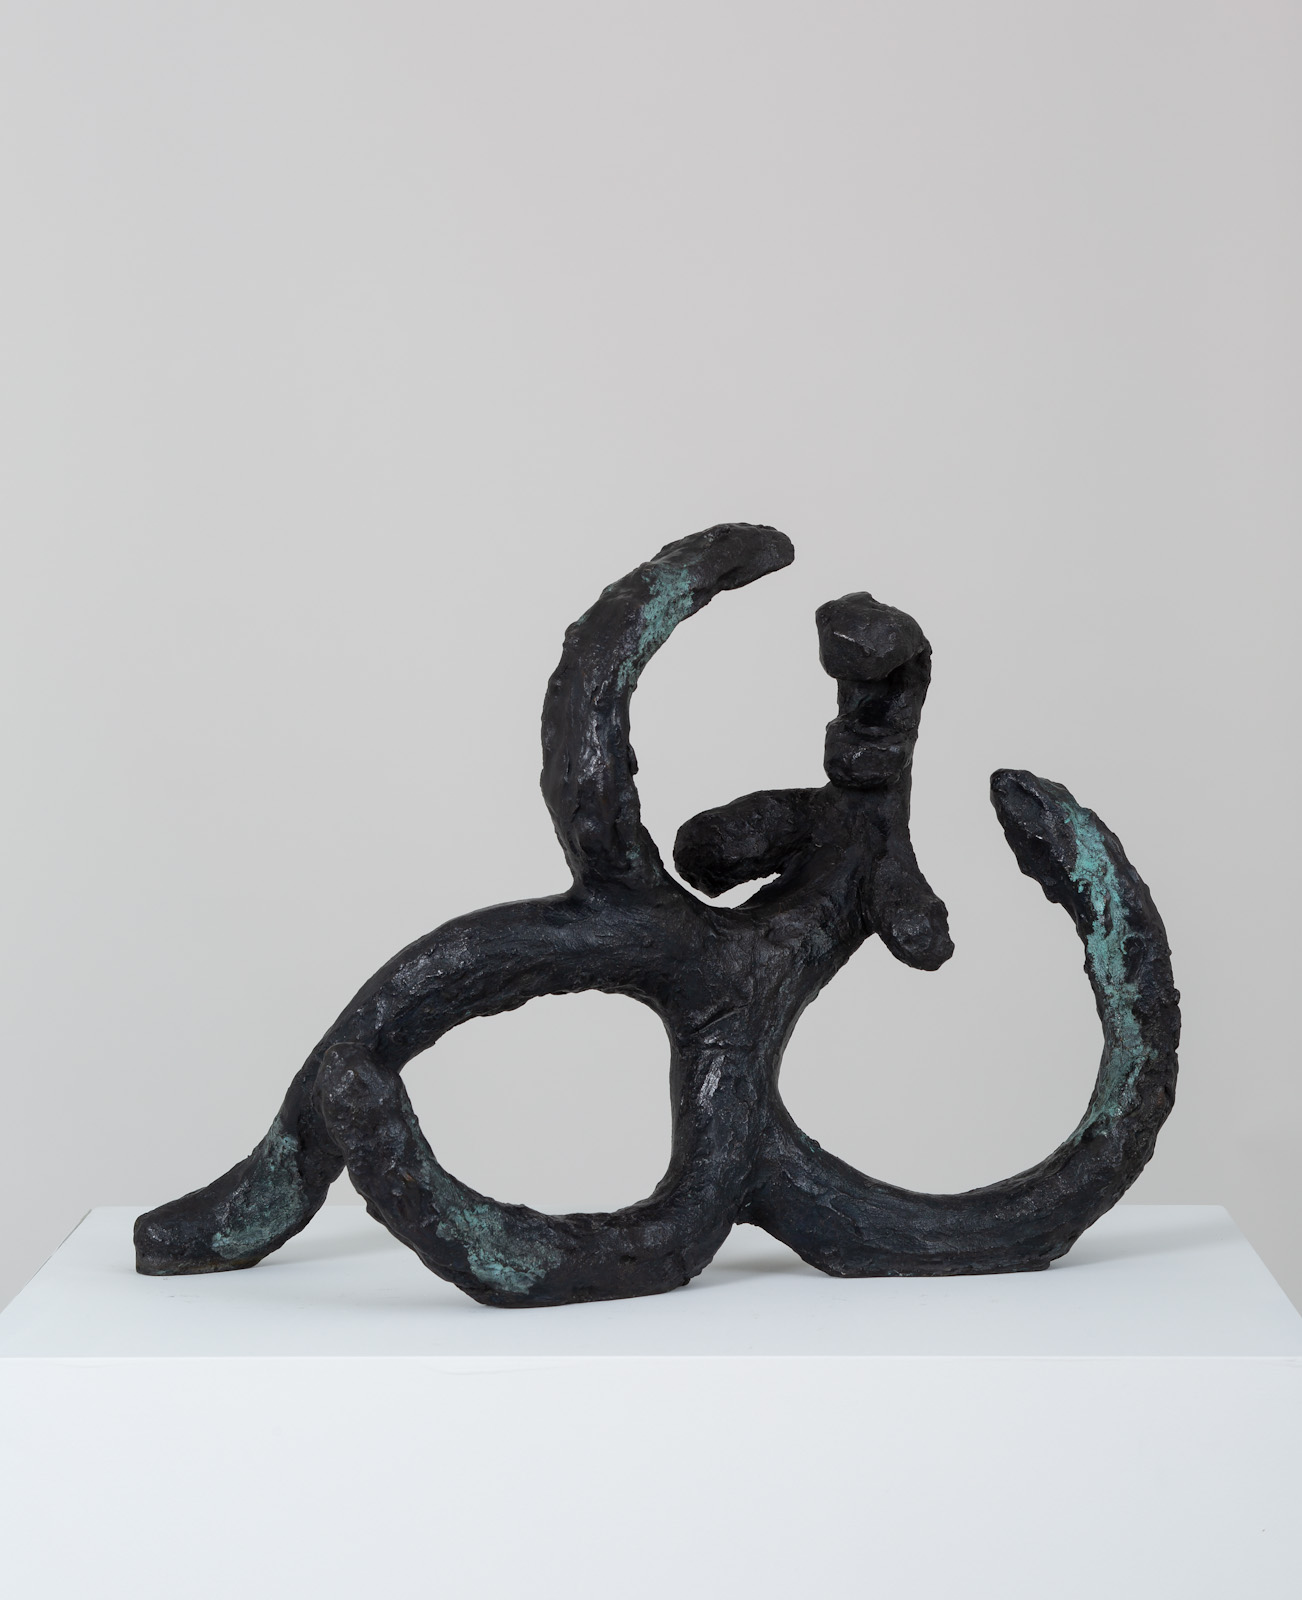 <em>woman reclining I</em>, 2017<br>Bronze<br>13 x 16 1/8 x 8 3/4 inches (33 x 41 x 22.2 cm)